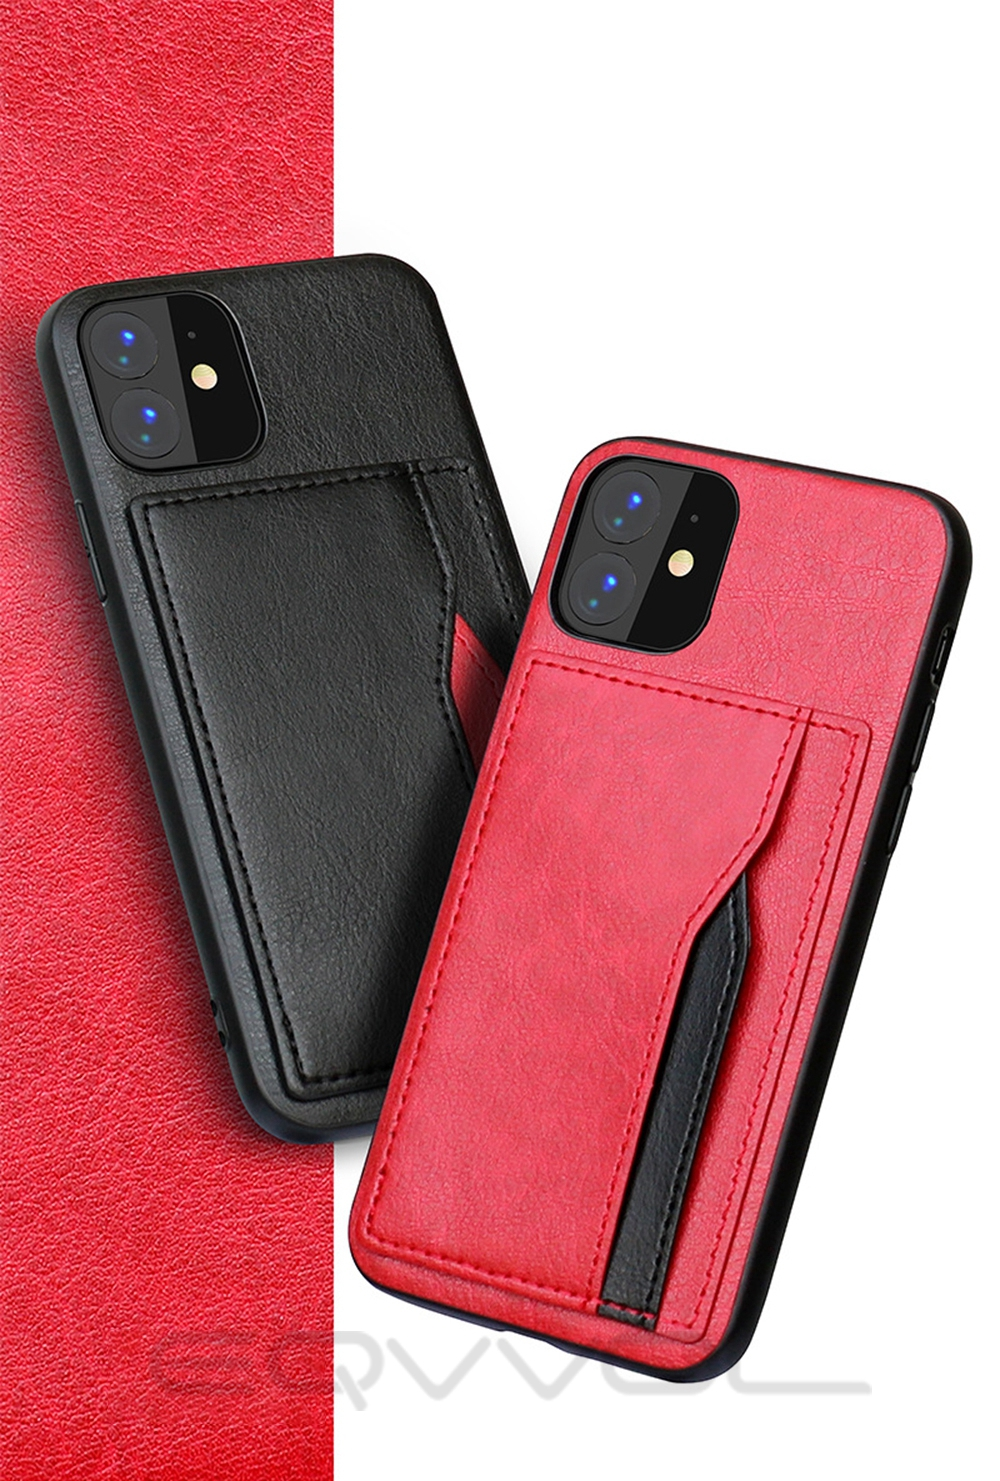 Hdd90a4c18b204bc1a460e9b92f516f2fM Eqvvol Retro PU Leather Case For iPhone 11 Pro MAX 2019 Multi Card Wallet Case For iPhone X XS MAX XR 11 Shockproof Cover Coque